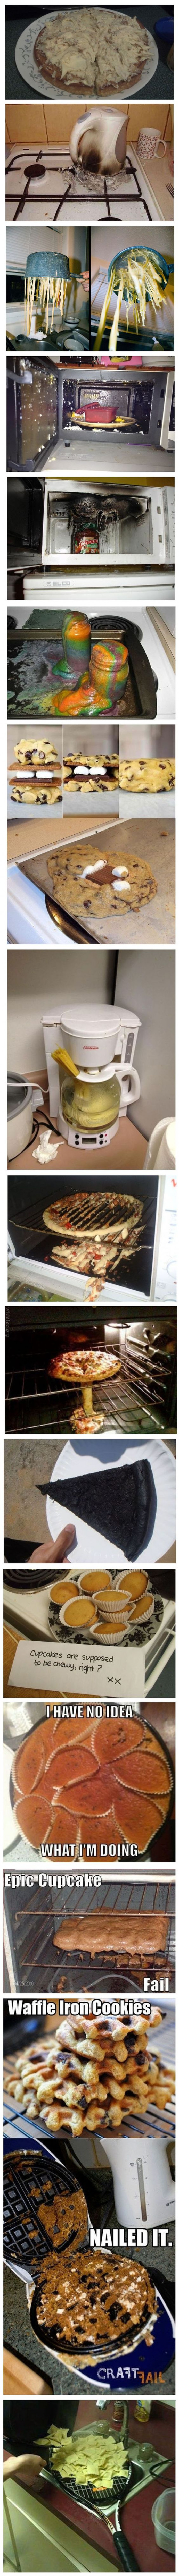 17 People Who Cook Worse Than You